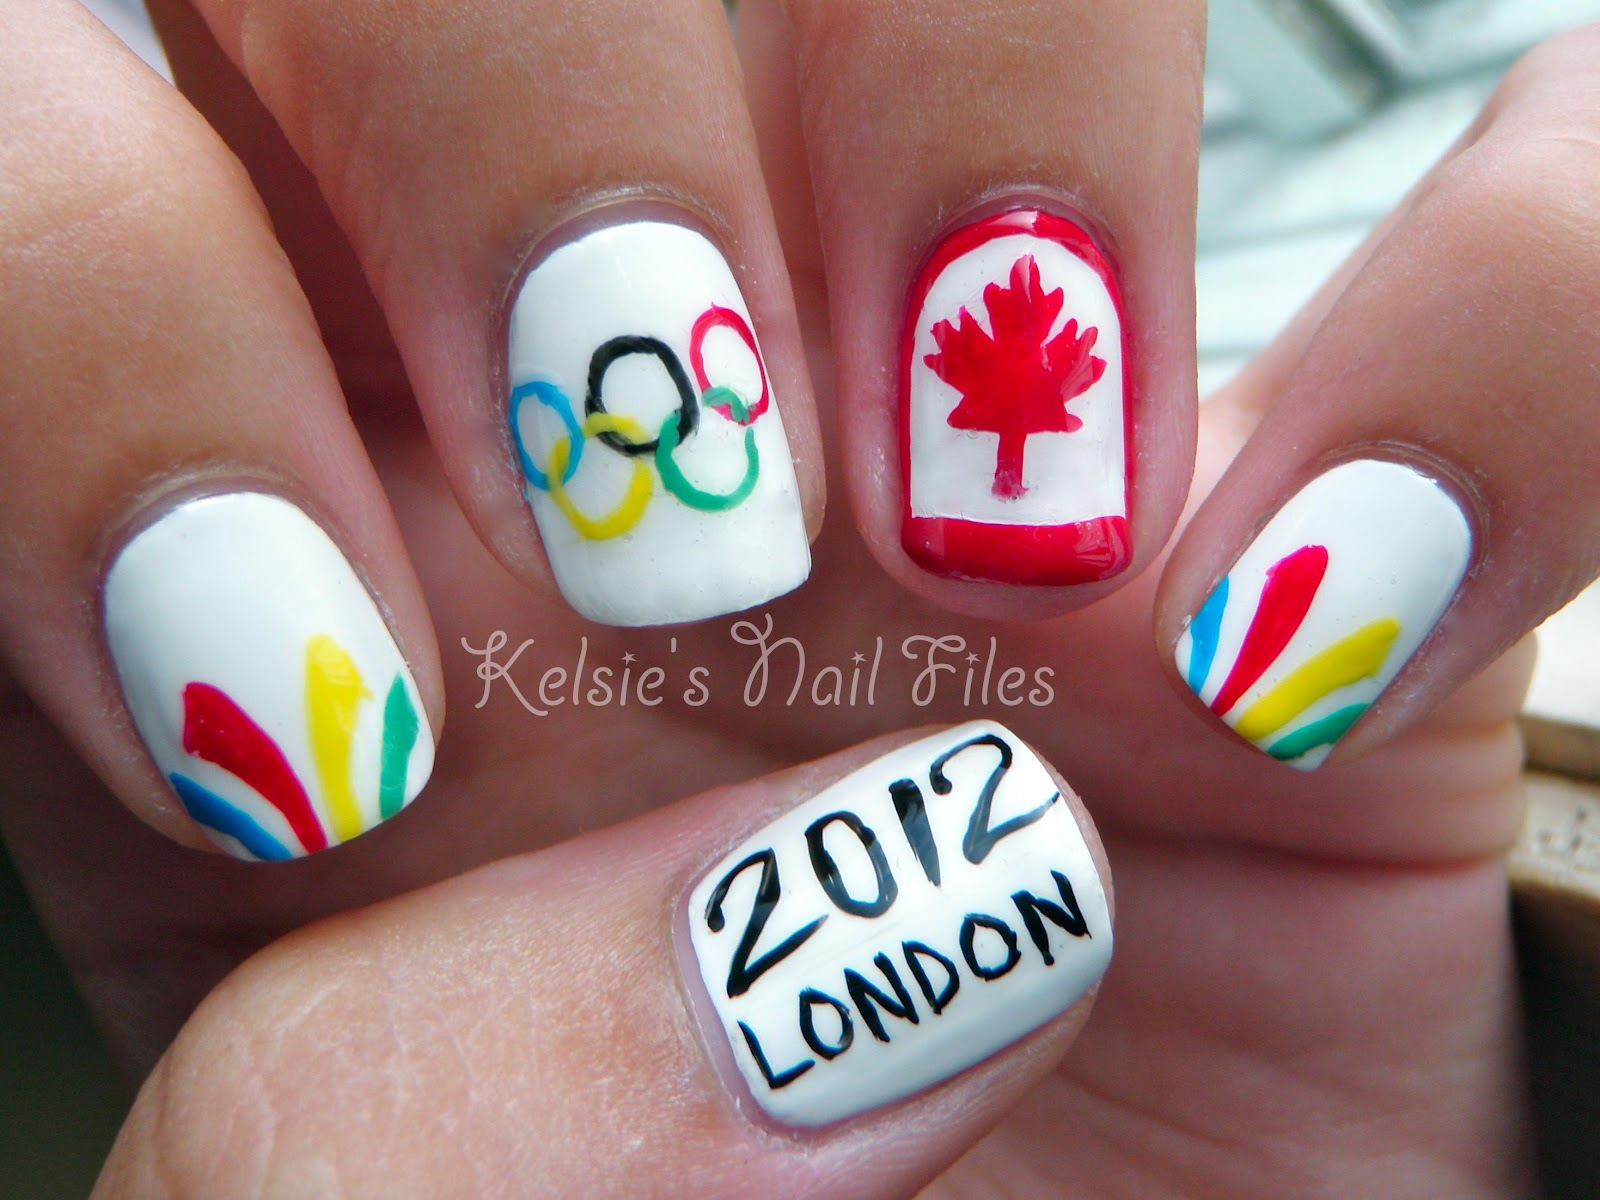 Kelsies nail files olympic nail art team canada my original idea was to include the team canada logo see the bottom of this post but i couldnt fit the olympic rings on my ring finger with the maple sciox Image collections